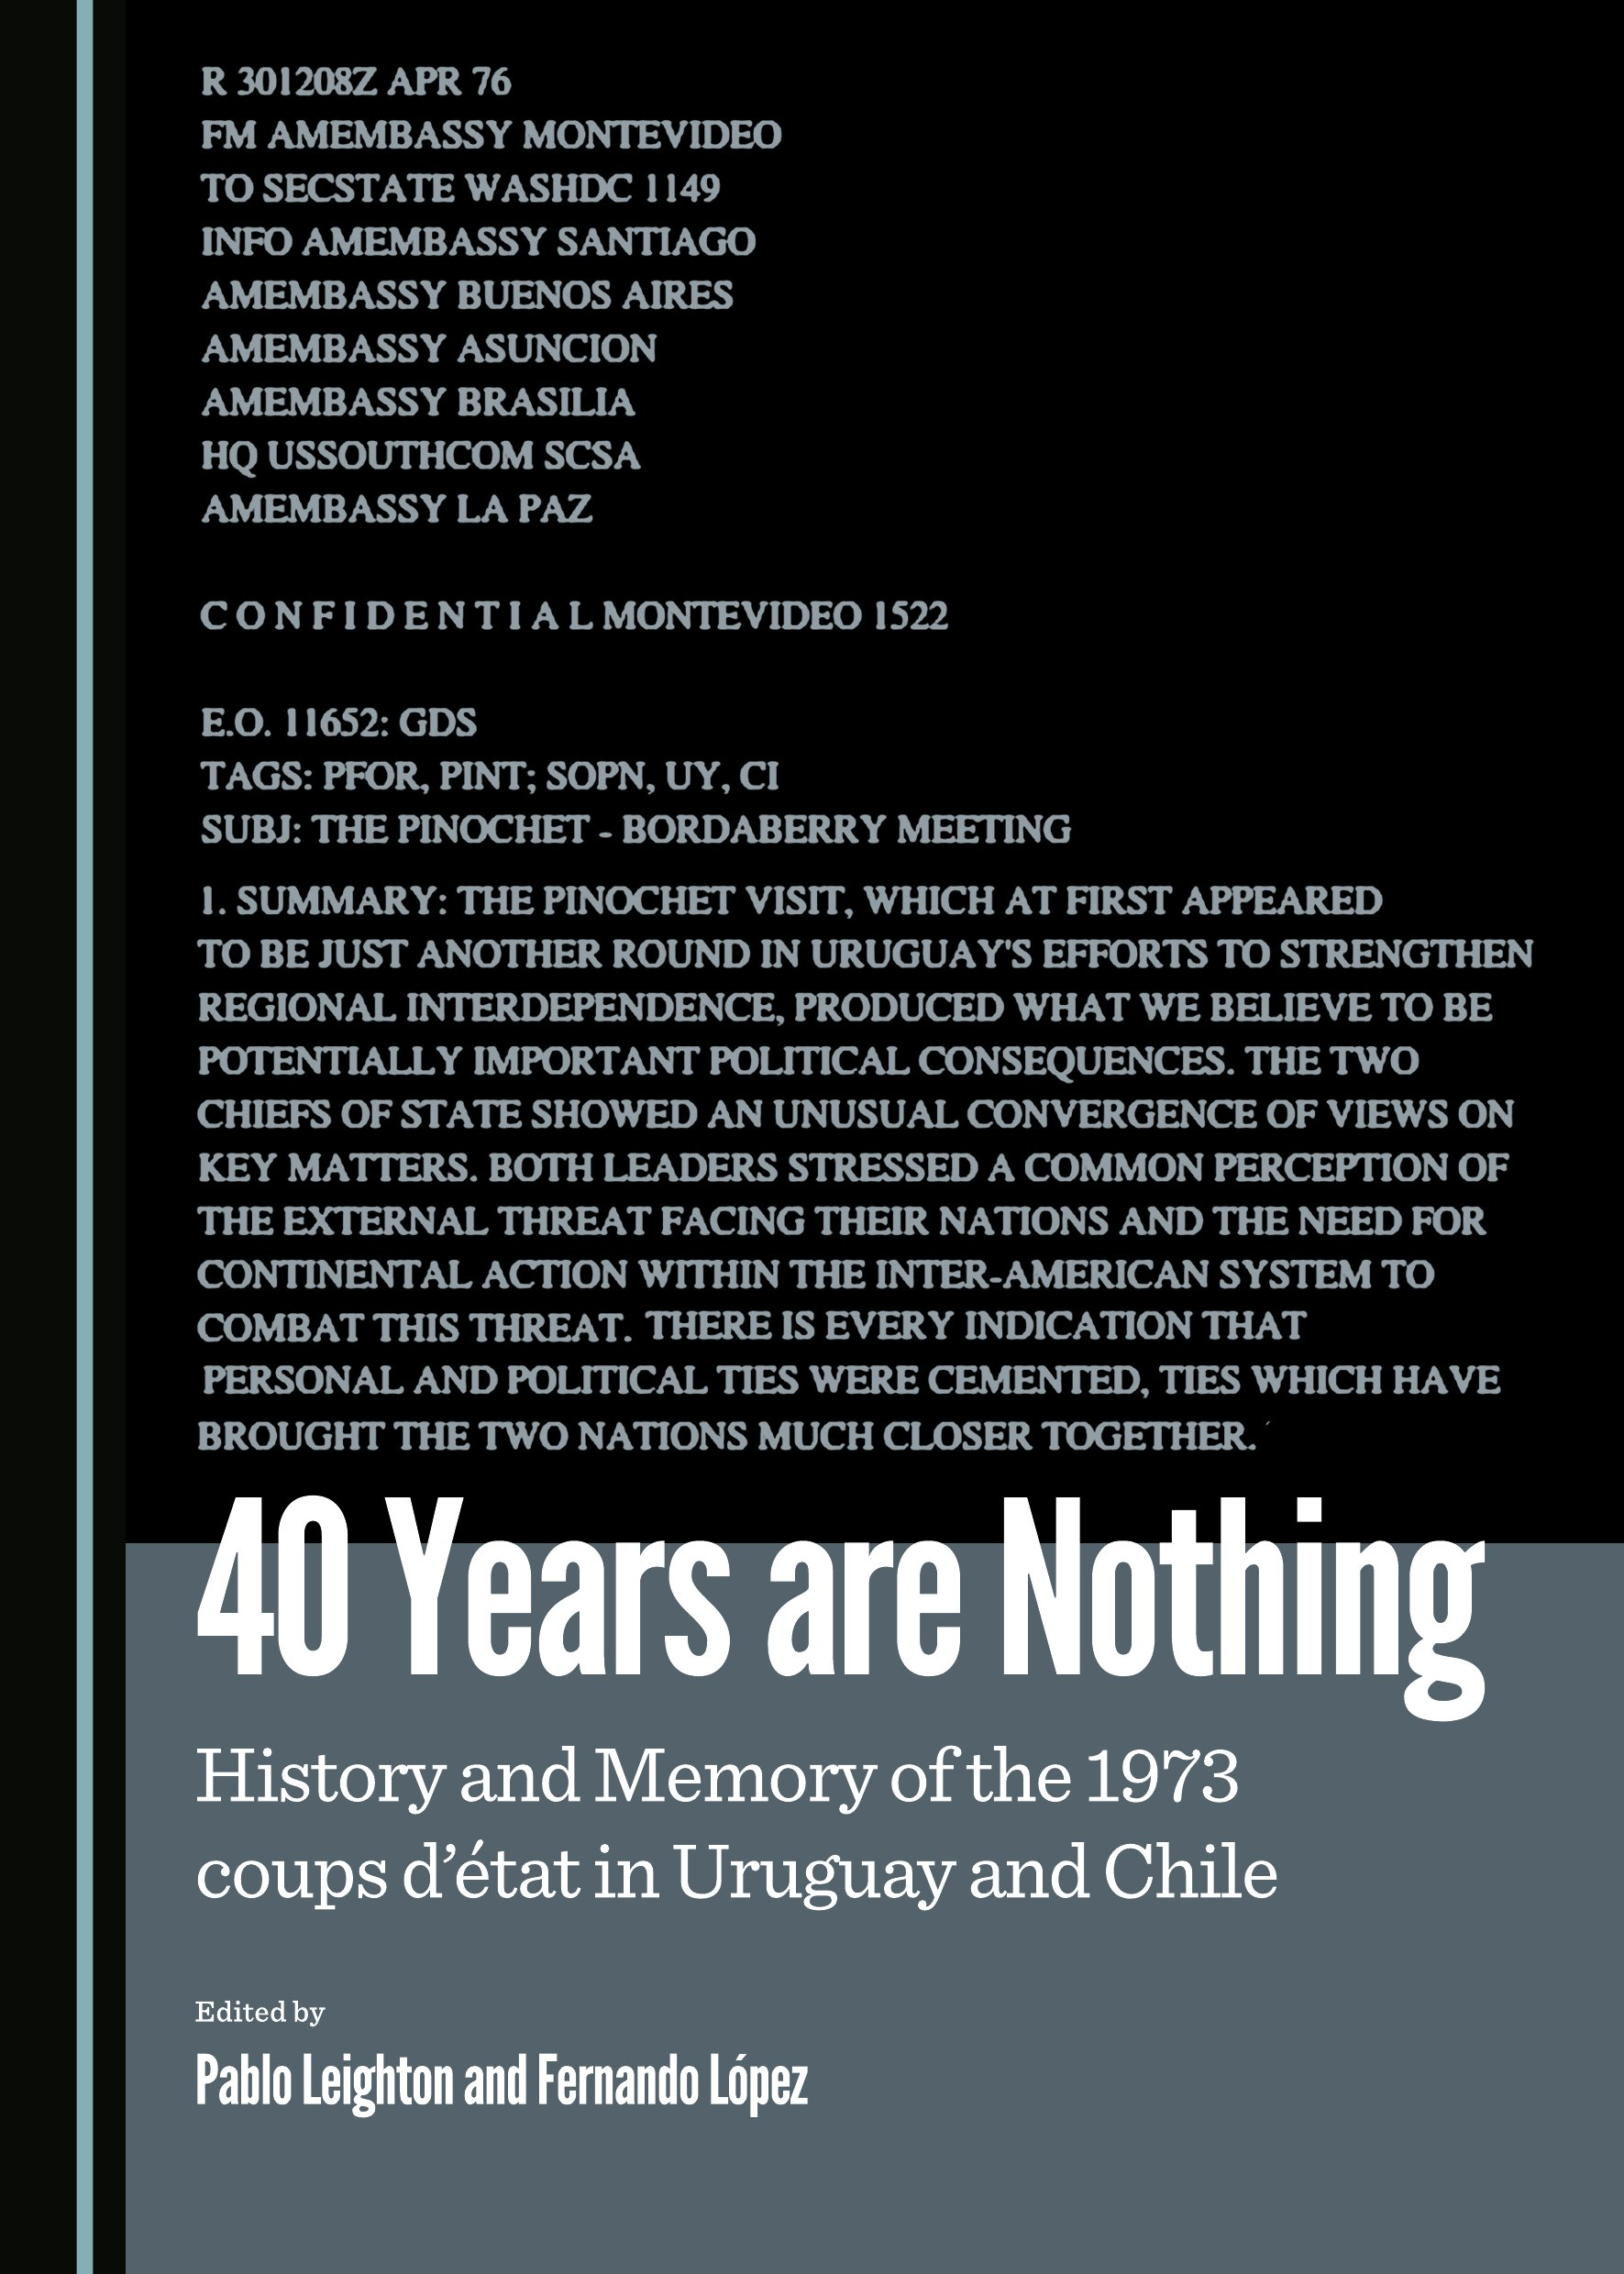 40 Years are Nothing: History and memory of the 1973 coups d'état in Uruguay and Chile